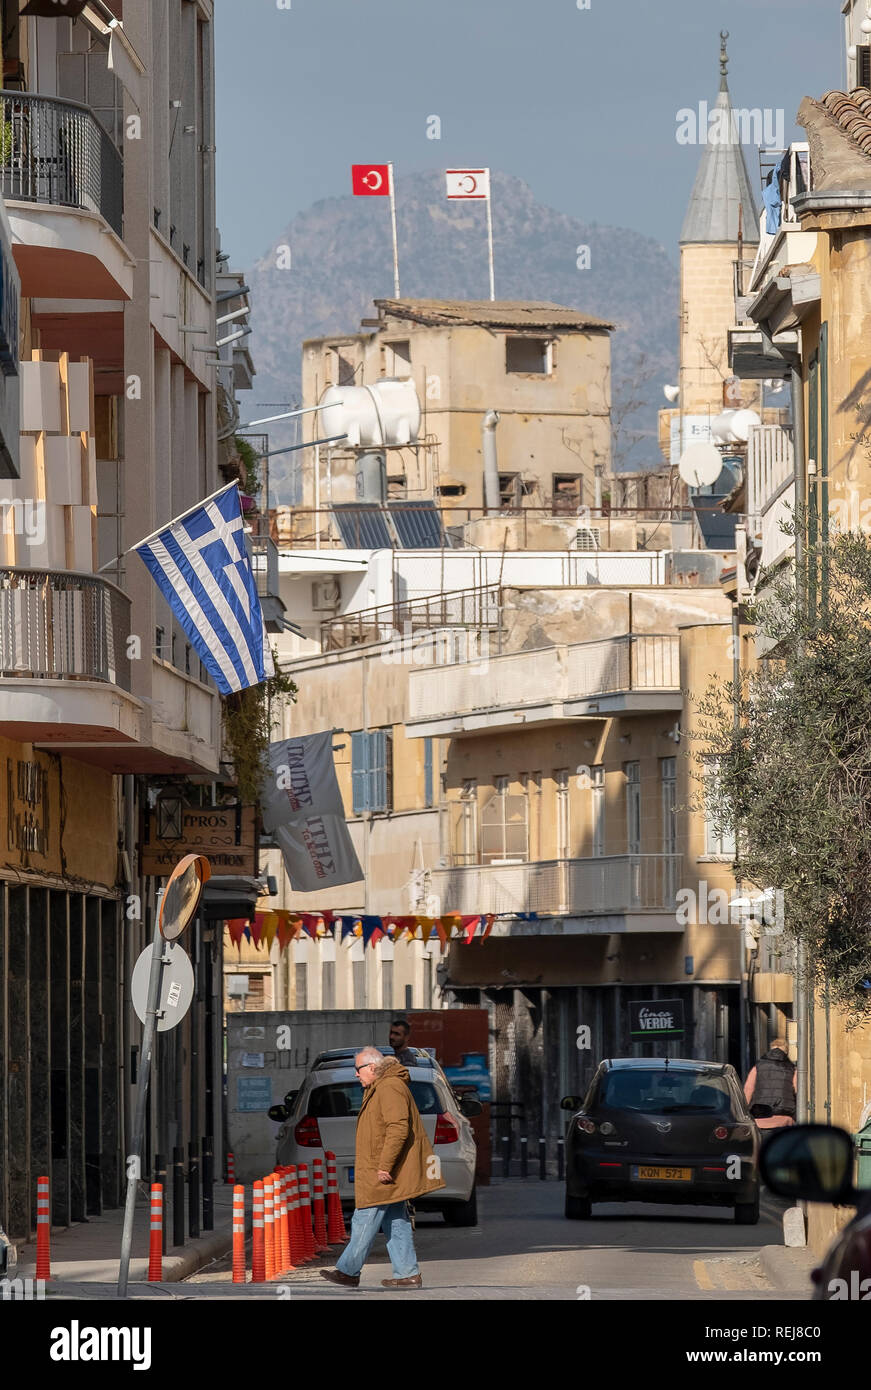 A view across the buffer zone in Nicosia, Cyprus between the Greek Cypriot and Turkish Cypriot sides of the last divided city in europe. - Stock Image